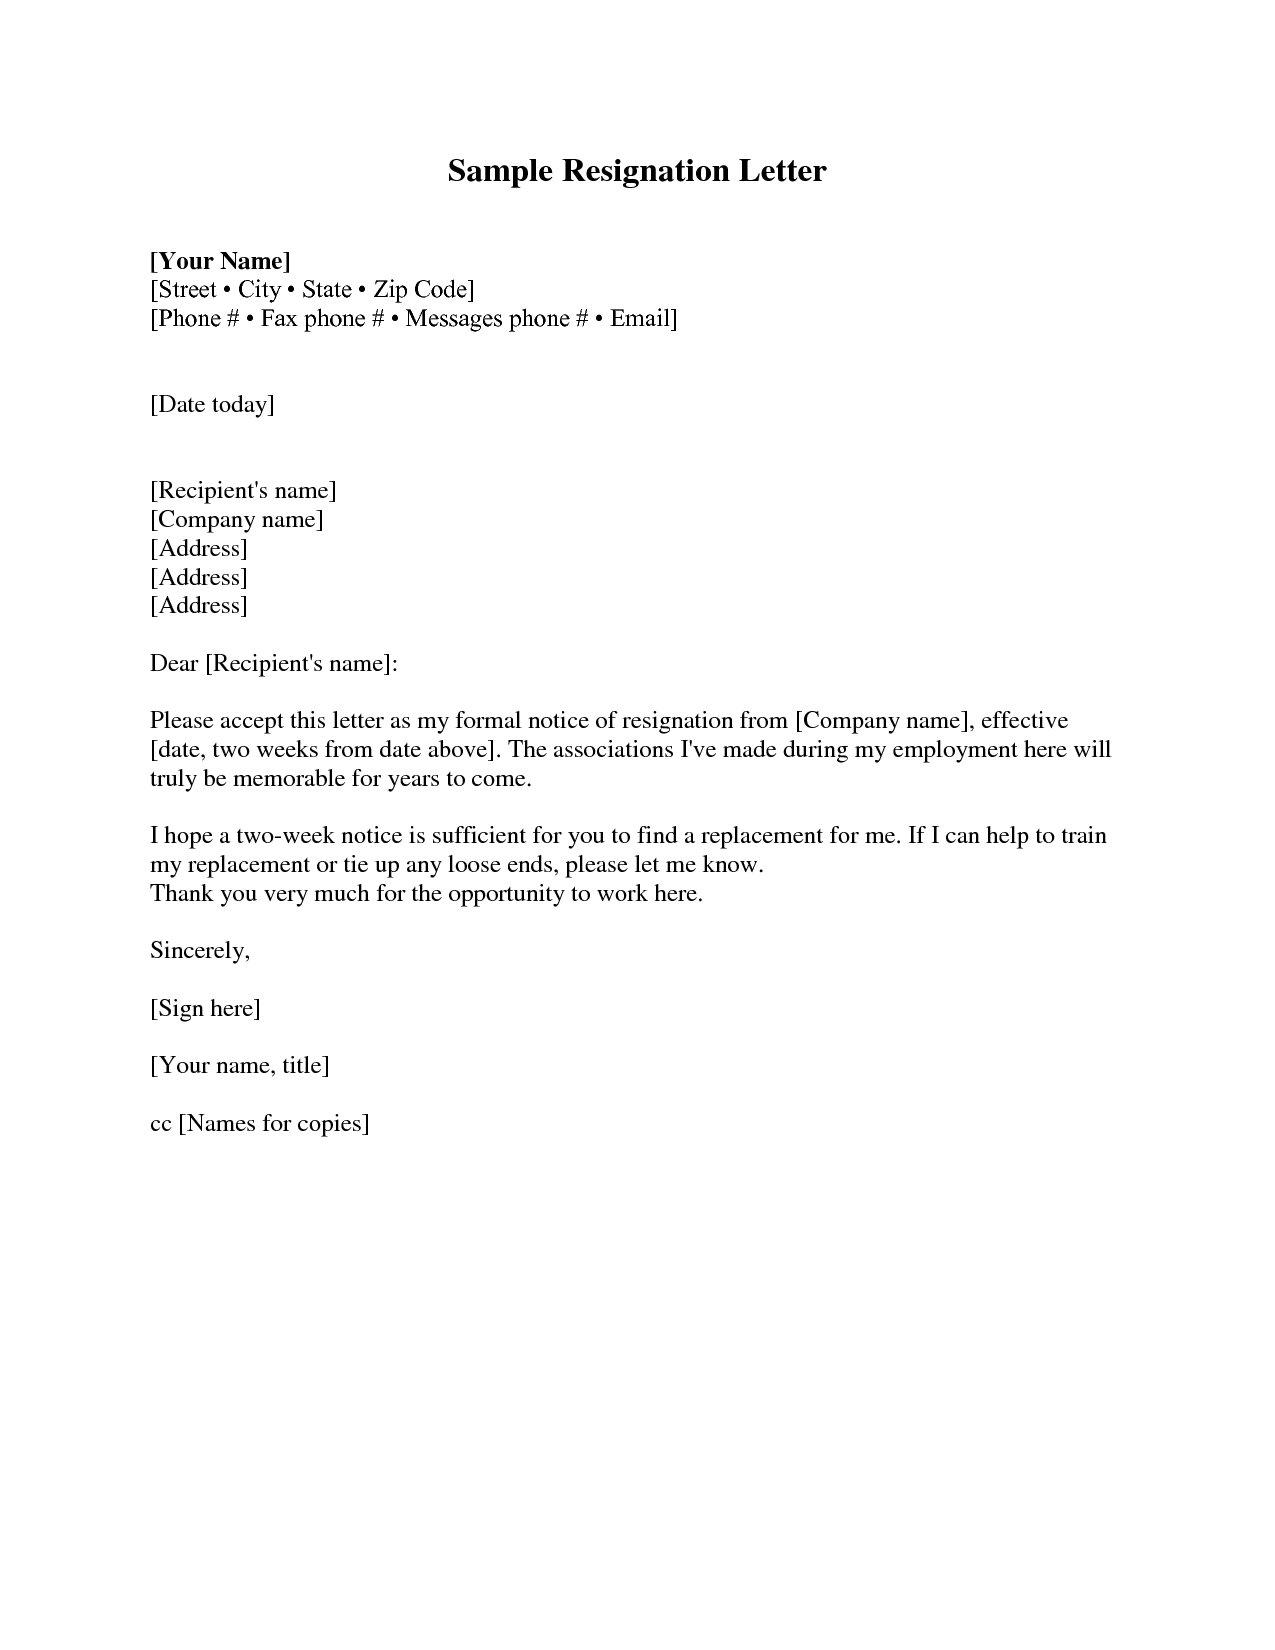 Resignation letter 2 weeks notice resignation letter https resignation letter 2 weeks notice resignation letter https3sixtycyclingstudioresignation expocarfo Choice Image